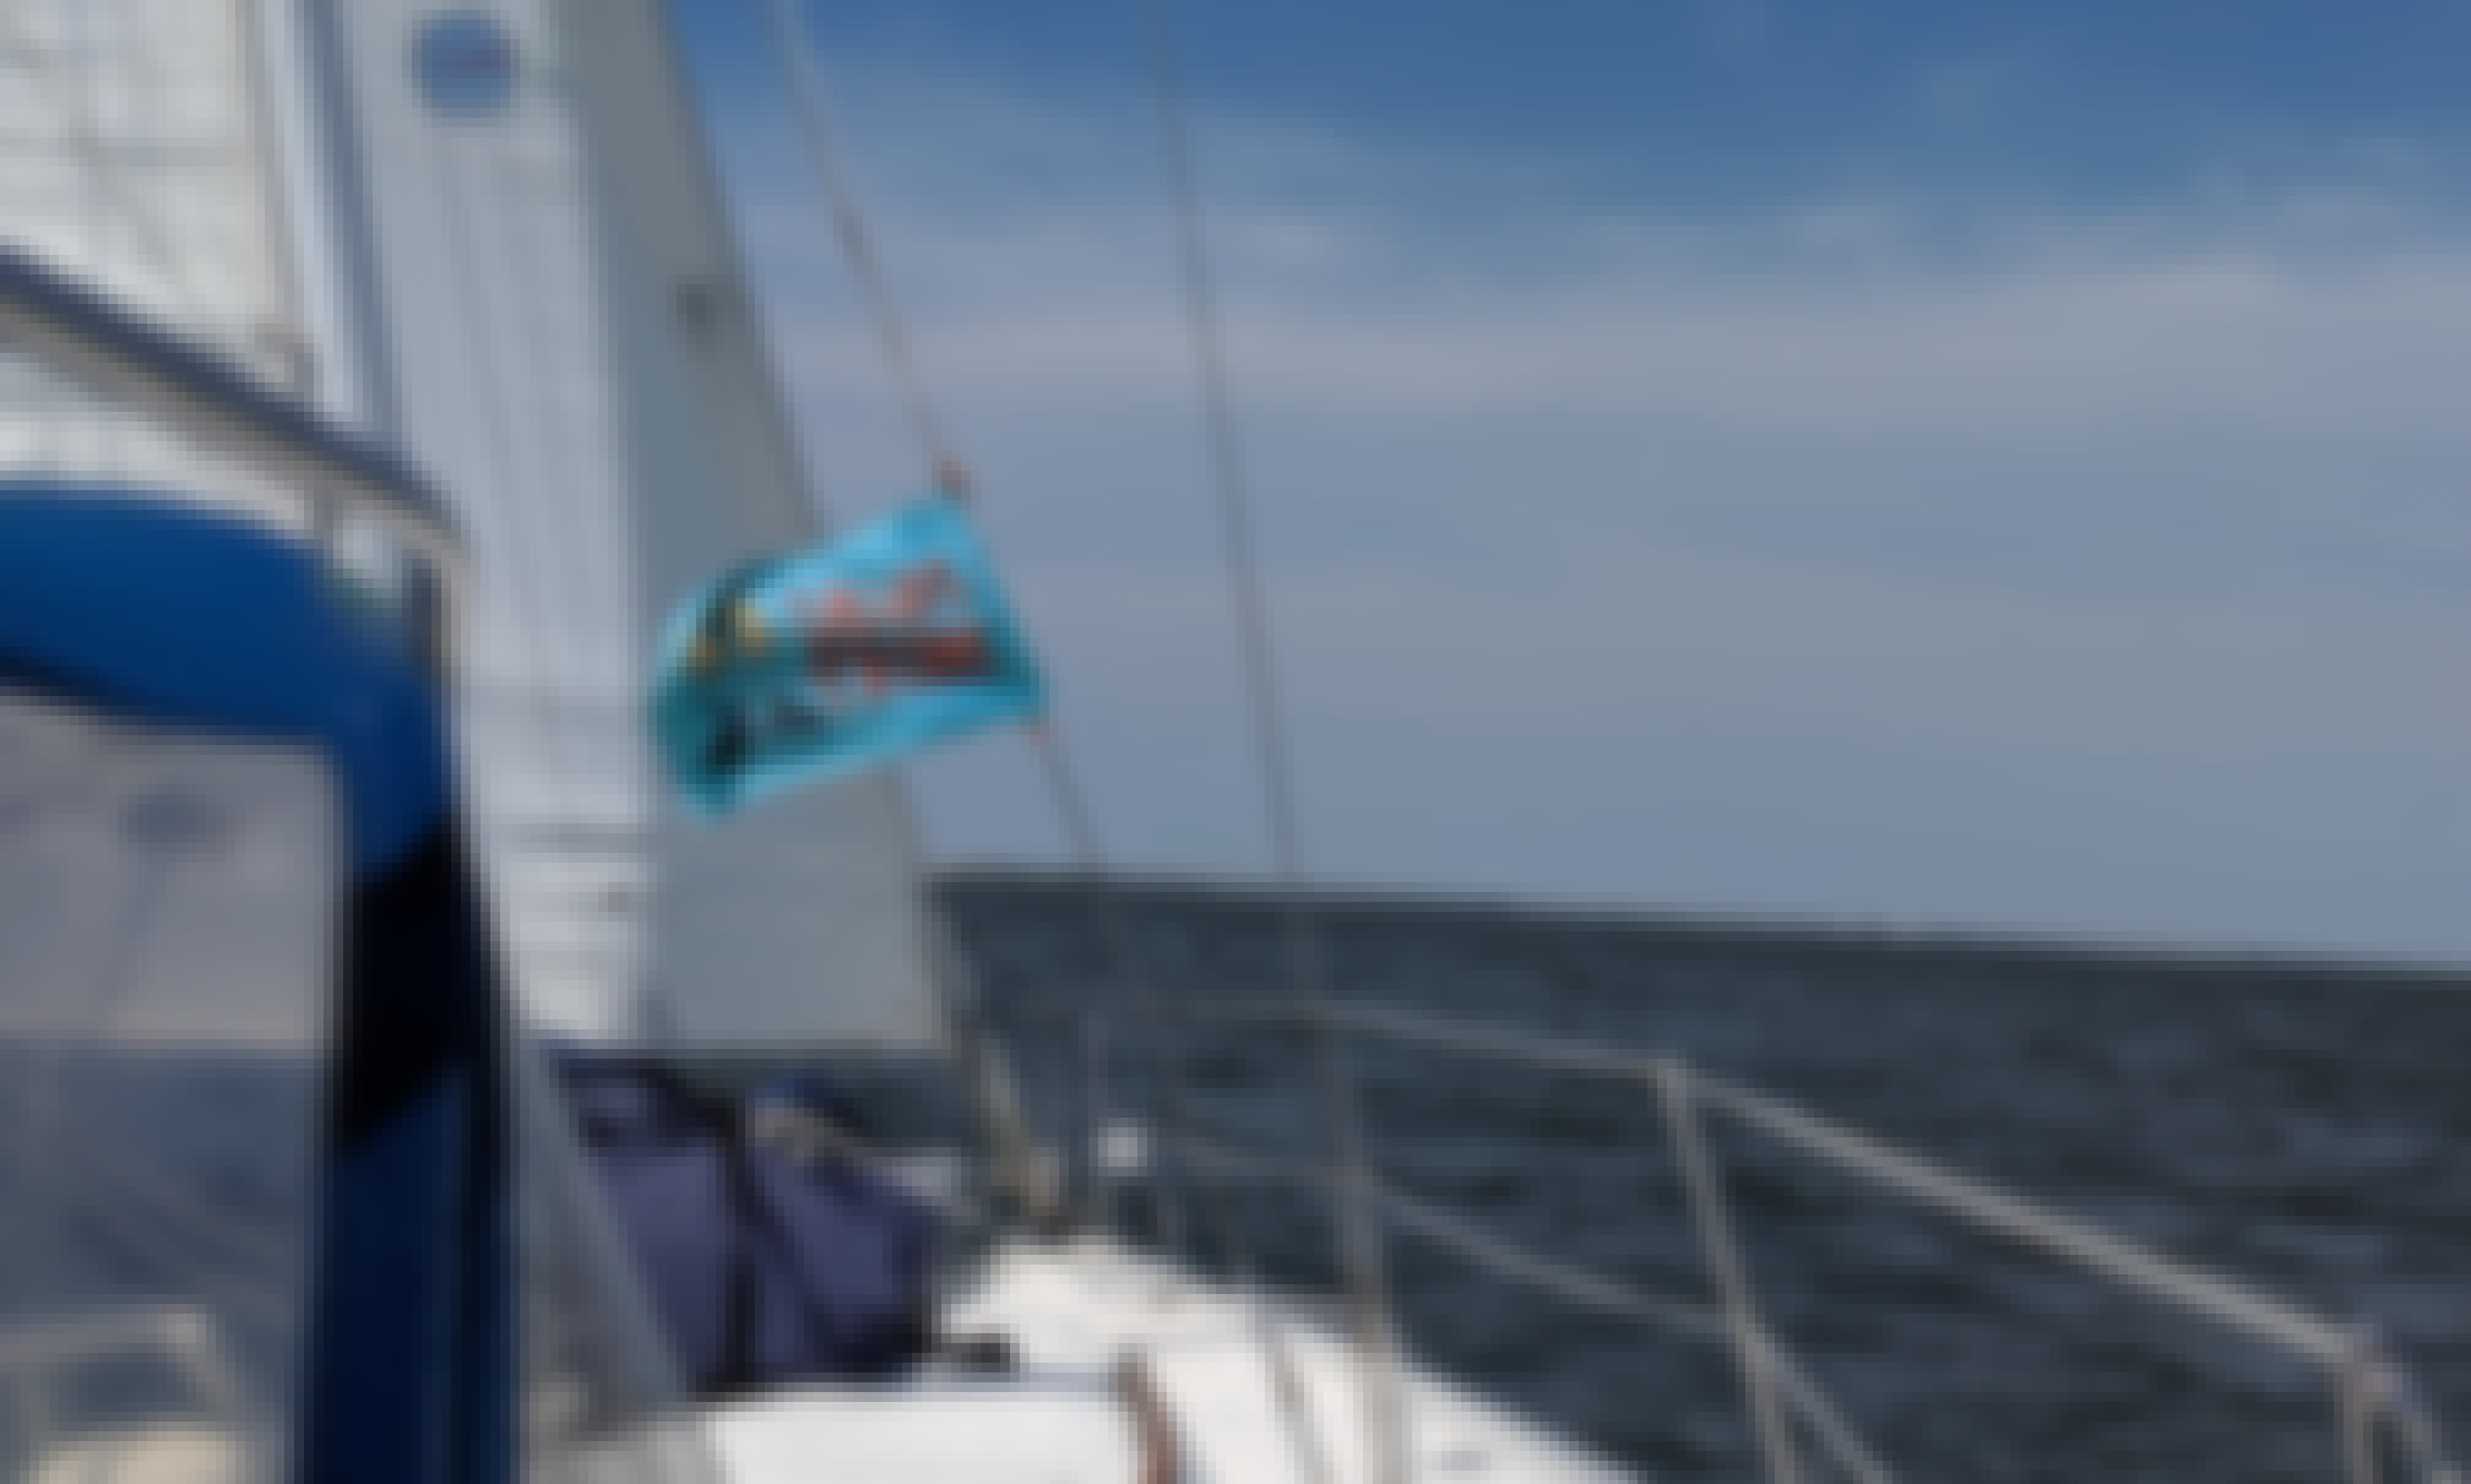 Sail Away Barnegat Bay! Book the 3-Hour Sail Tour with 35' Sailboat